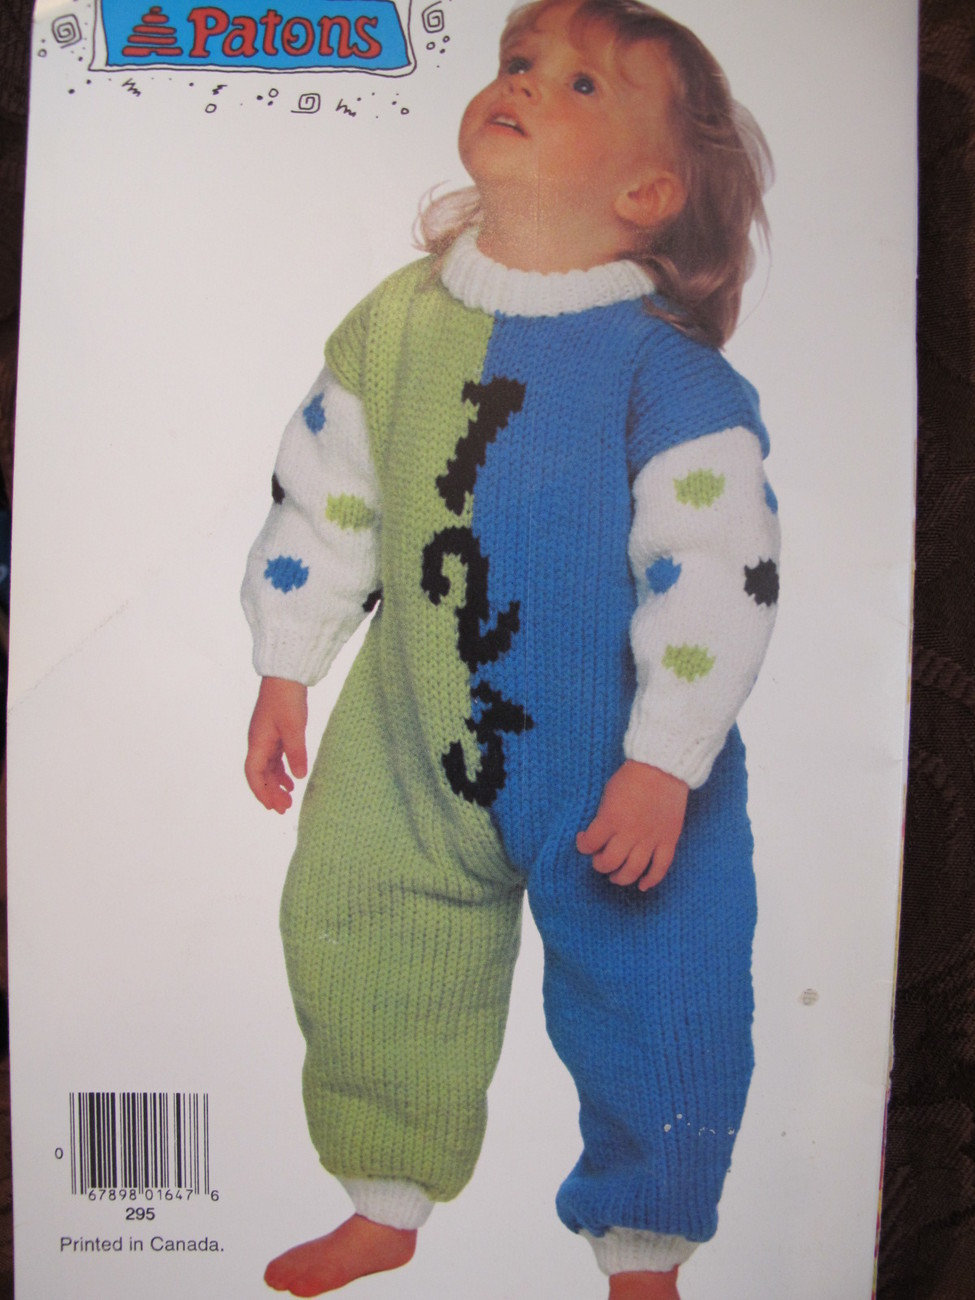 Patons Knitting Patterns Sweaters Pants Jackets Hats Romper Suit CHILDREN 1 - 4